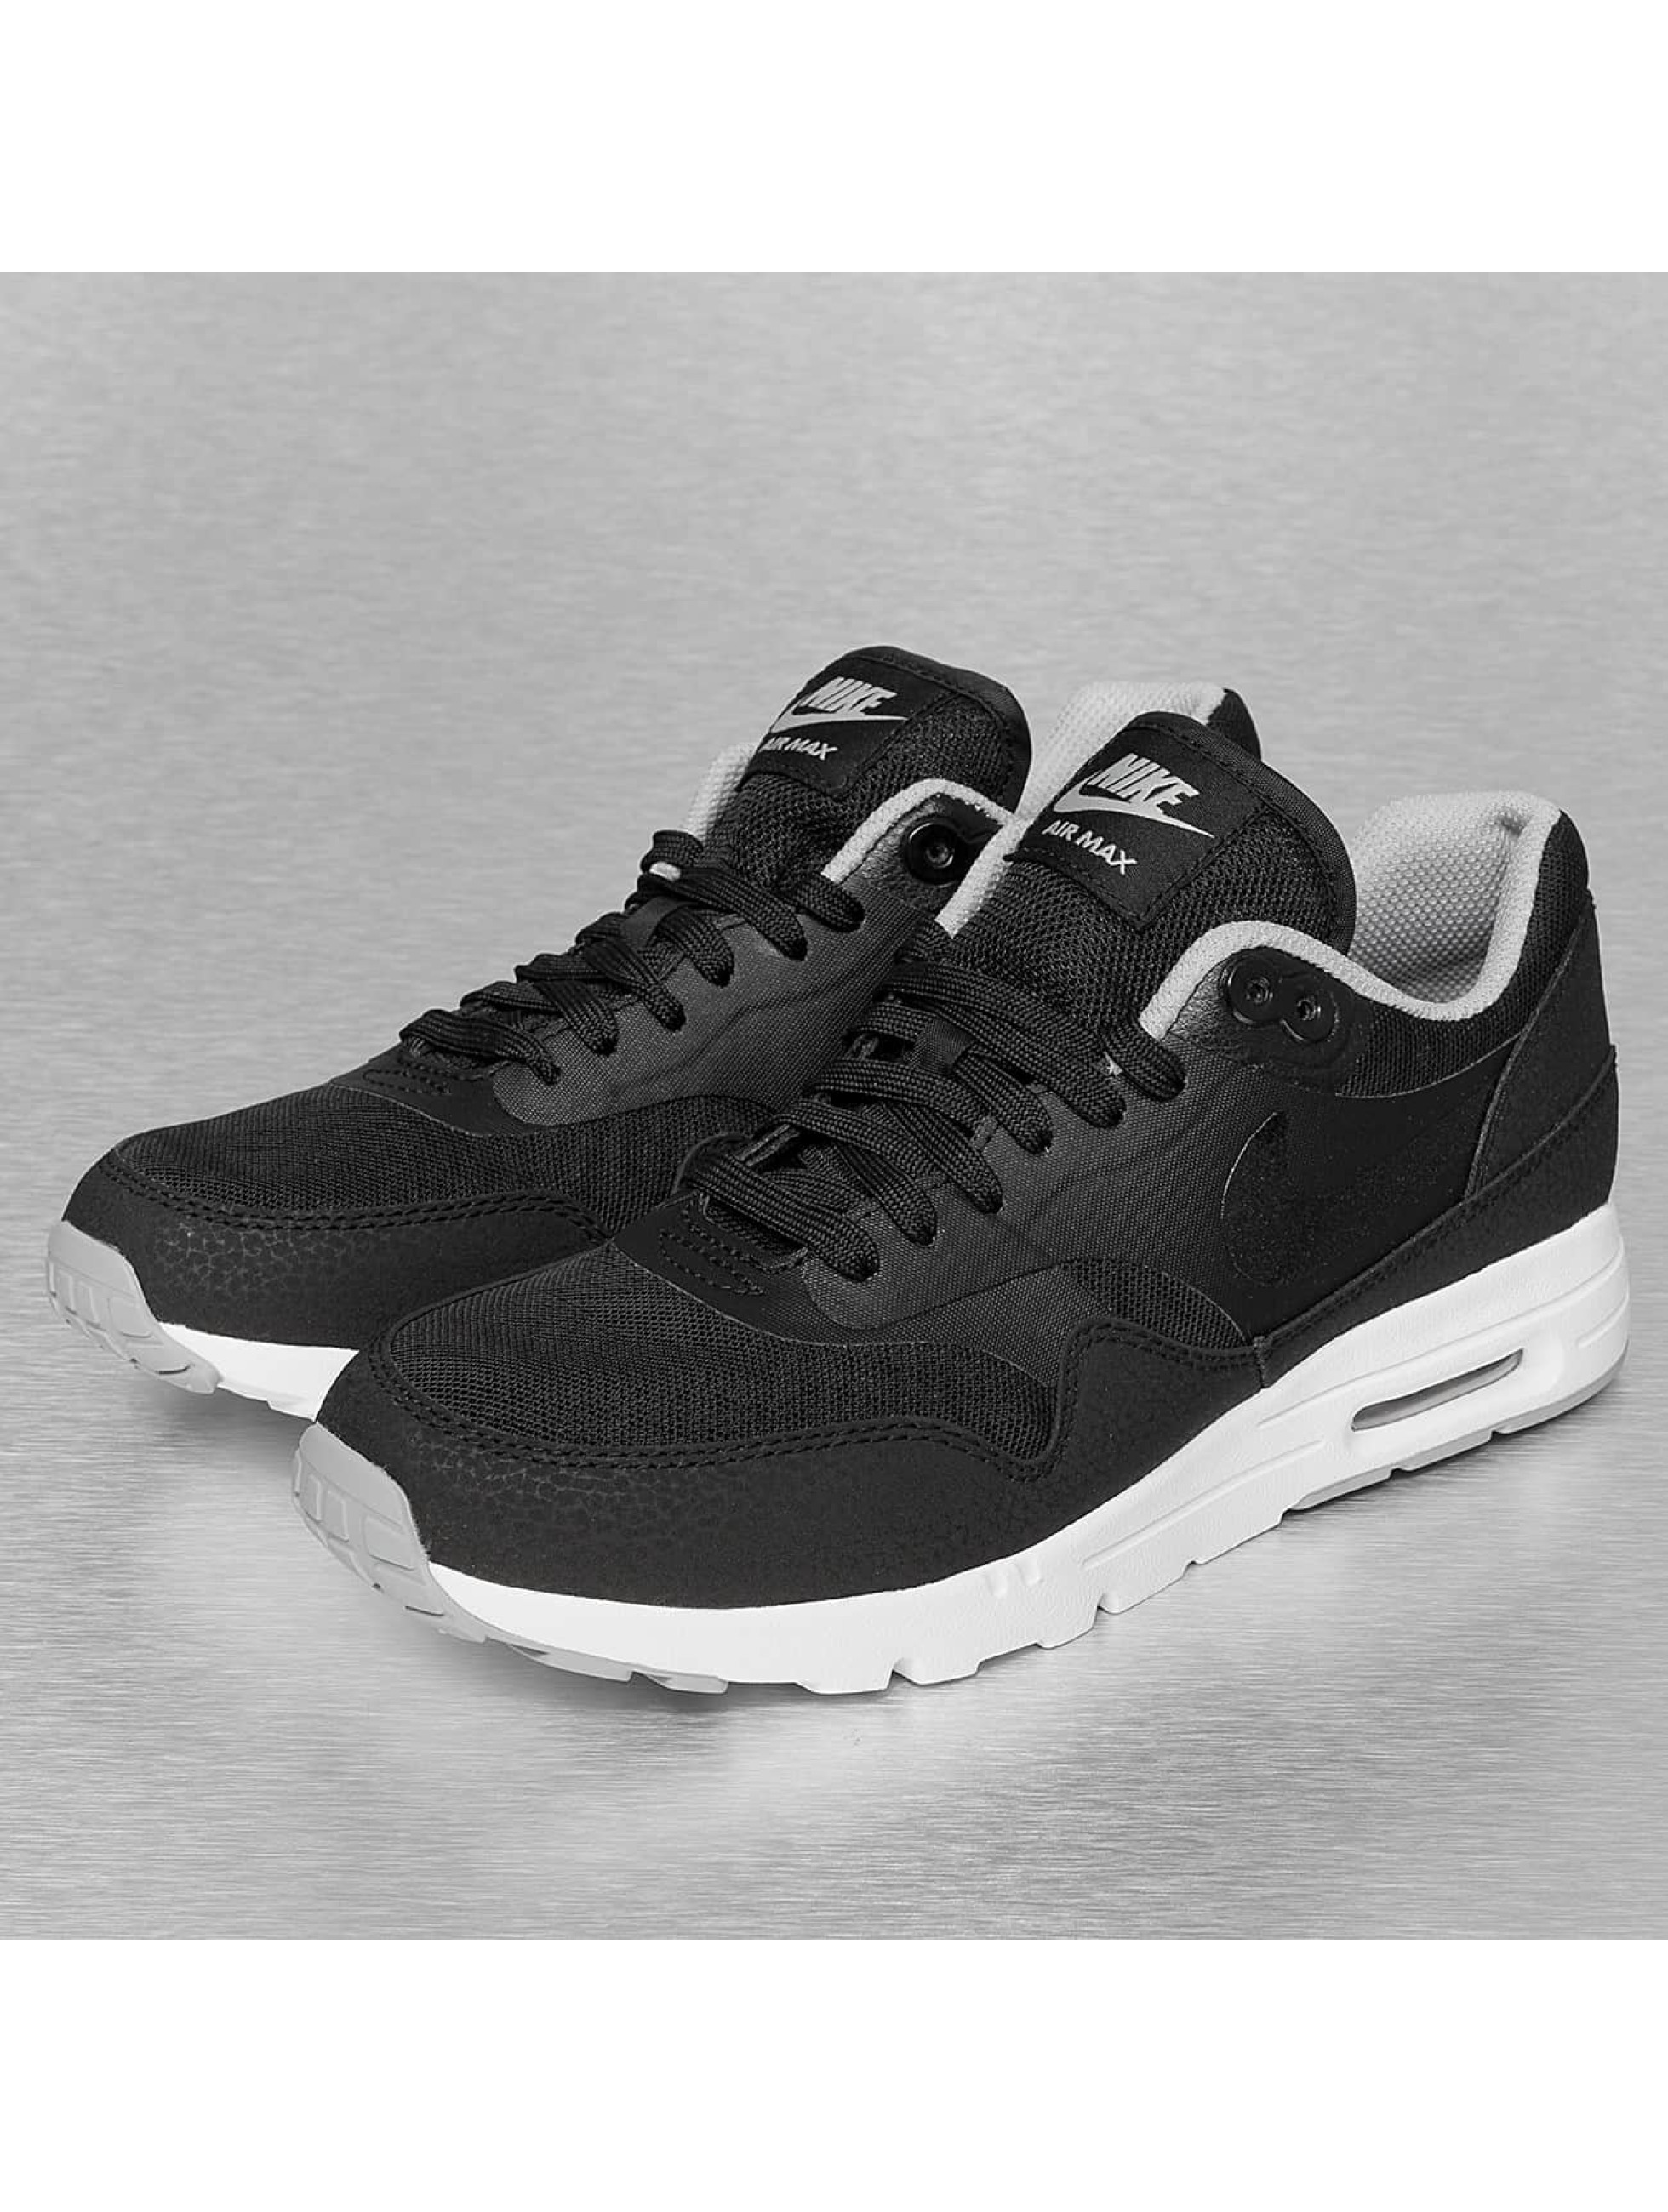 t shirt yve saint laurent - Nike Baskets Wmns Air Max 1 Ultra Essentials Noir | Top Swiss ...